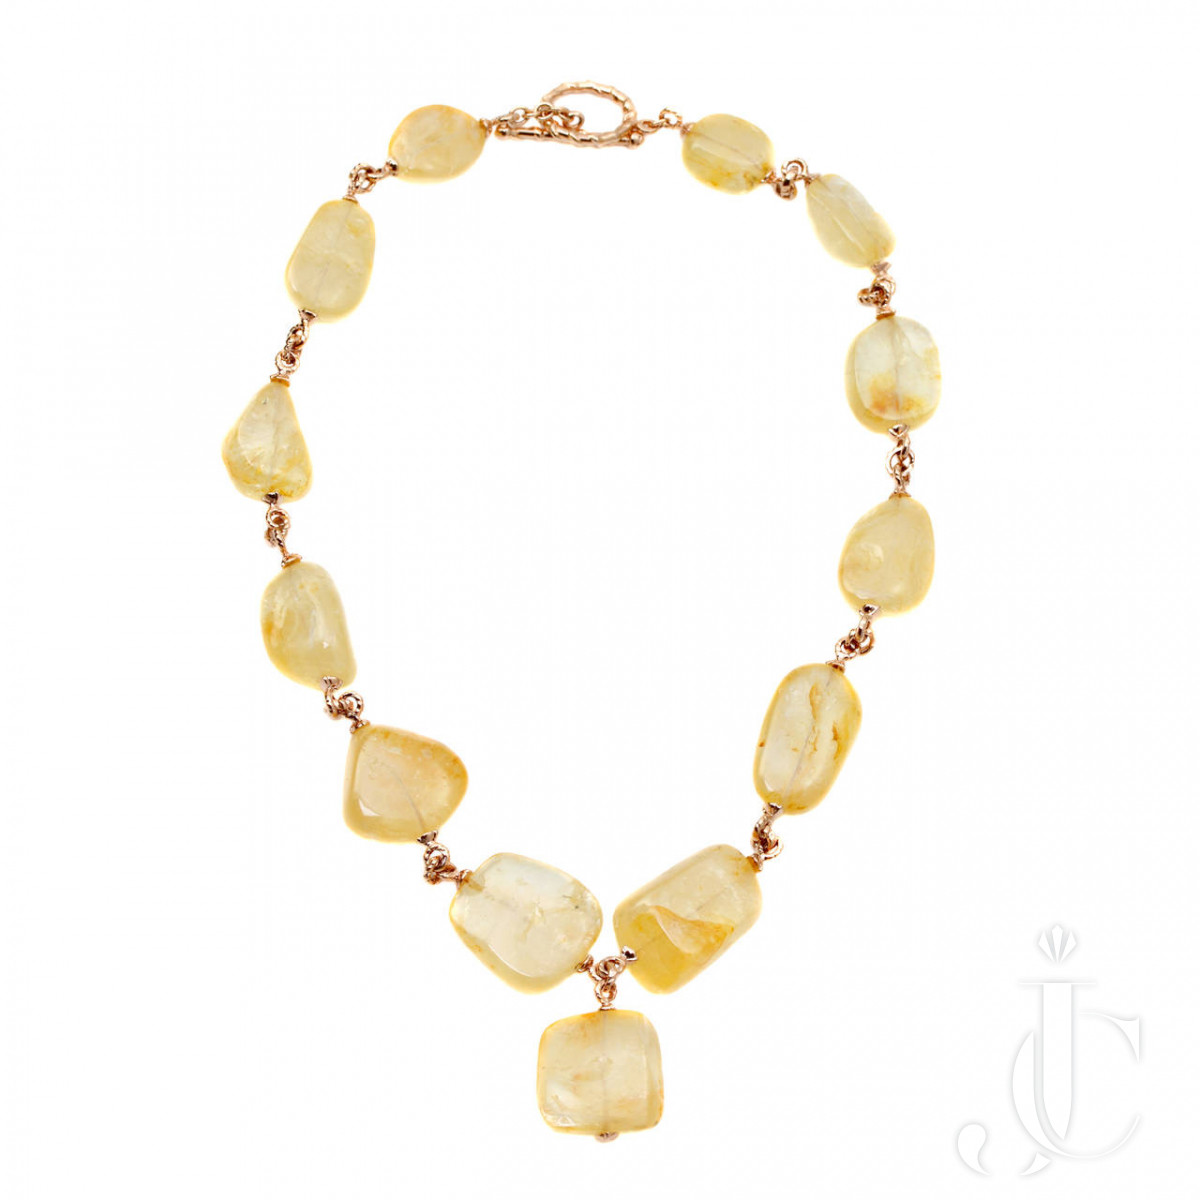 Stunning Yellow Sapphire NH necklace in 18 Kr Gold